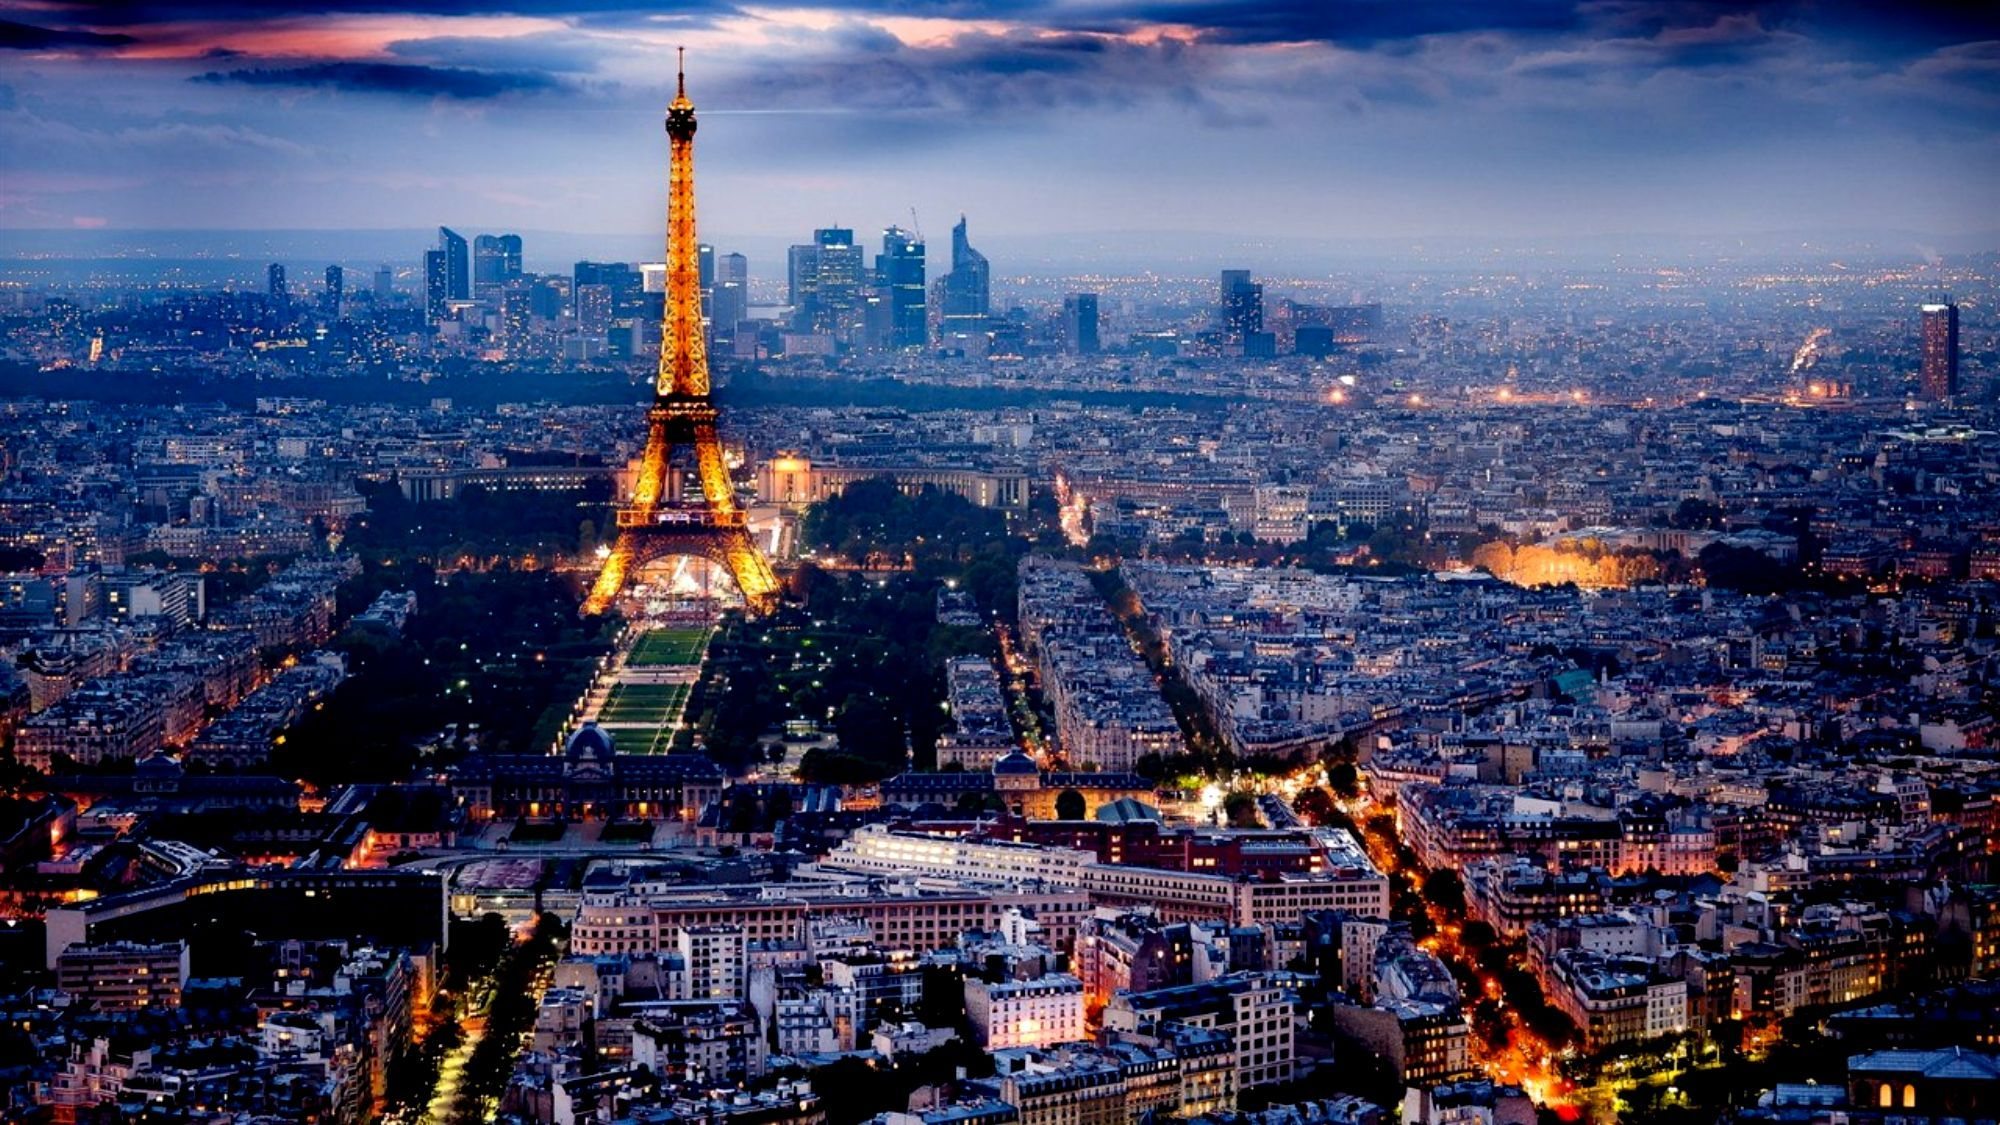 Download Paris Wallpapers for your computer and laptop You 2000x1125